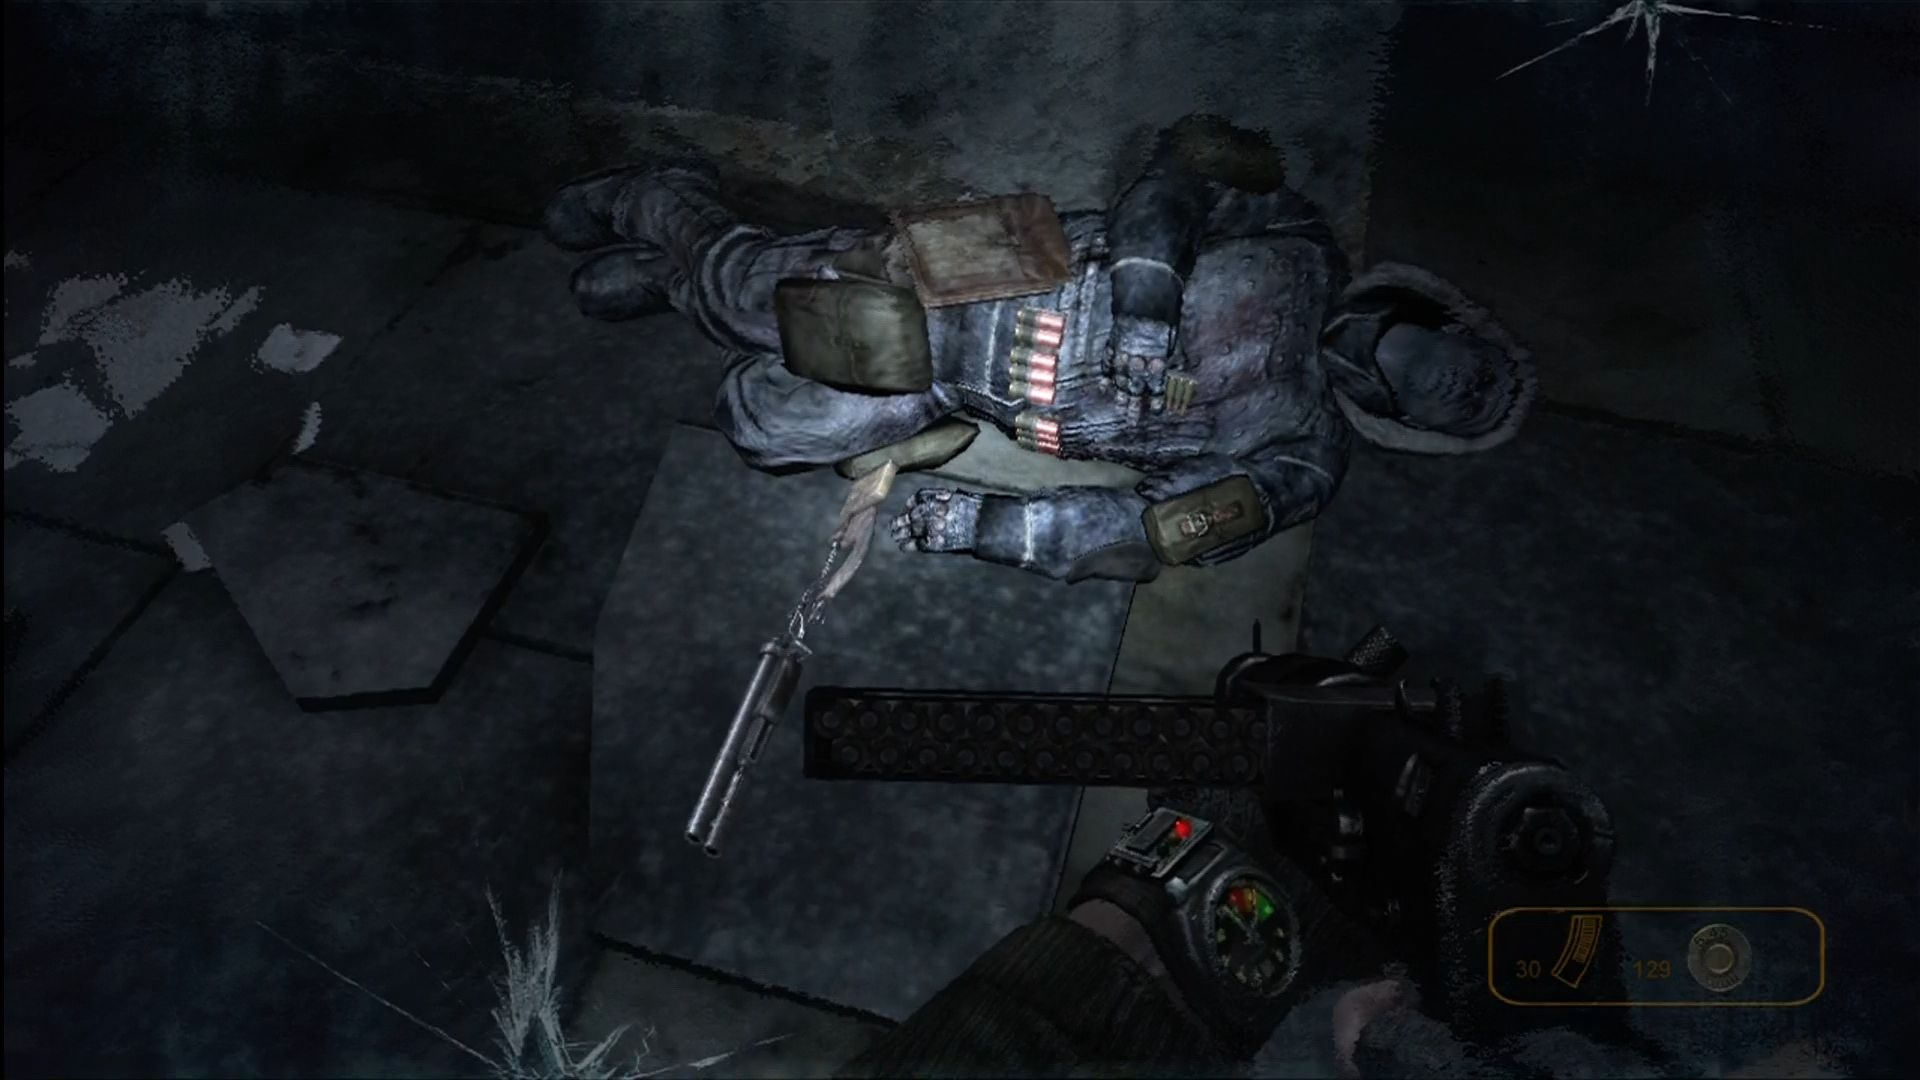 Metro 2033 Xbox 360 Scavenge items from the dead to survive.